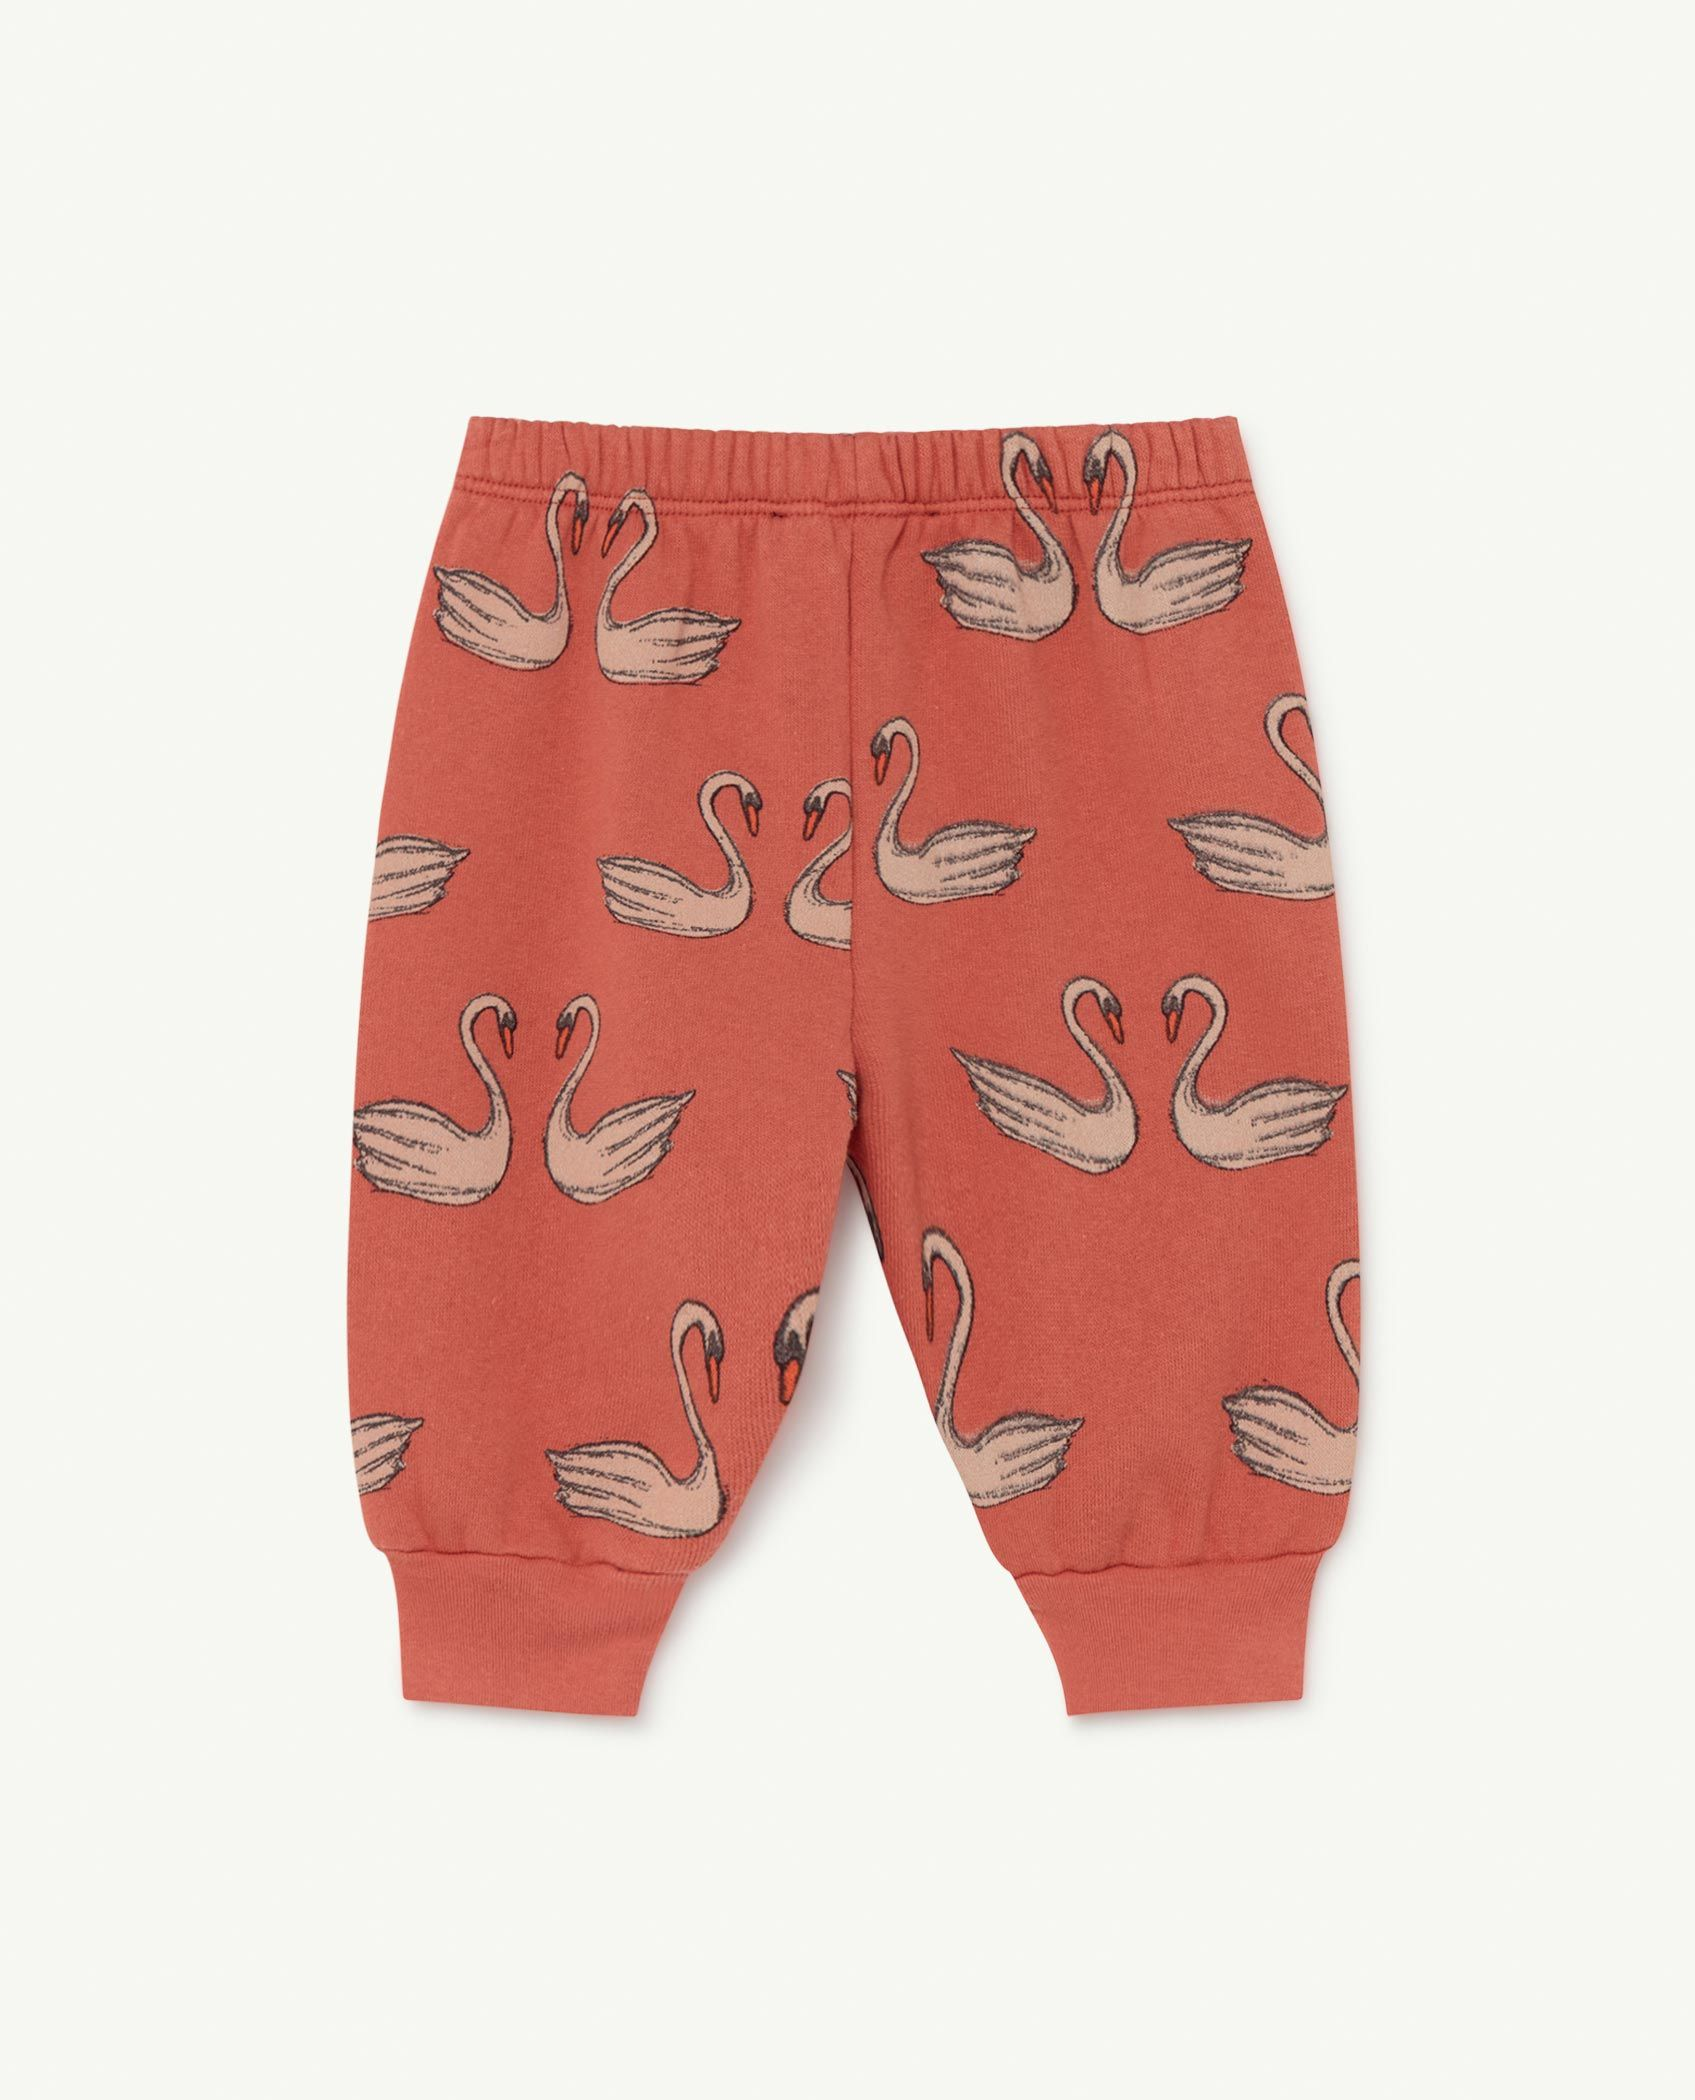 Red Swans Dromedary Baby Trousers img-2